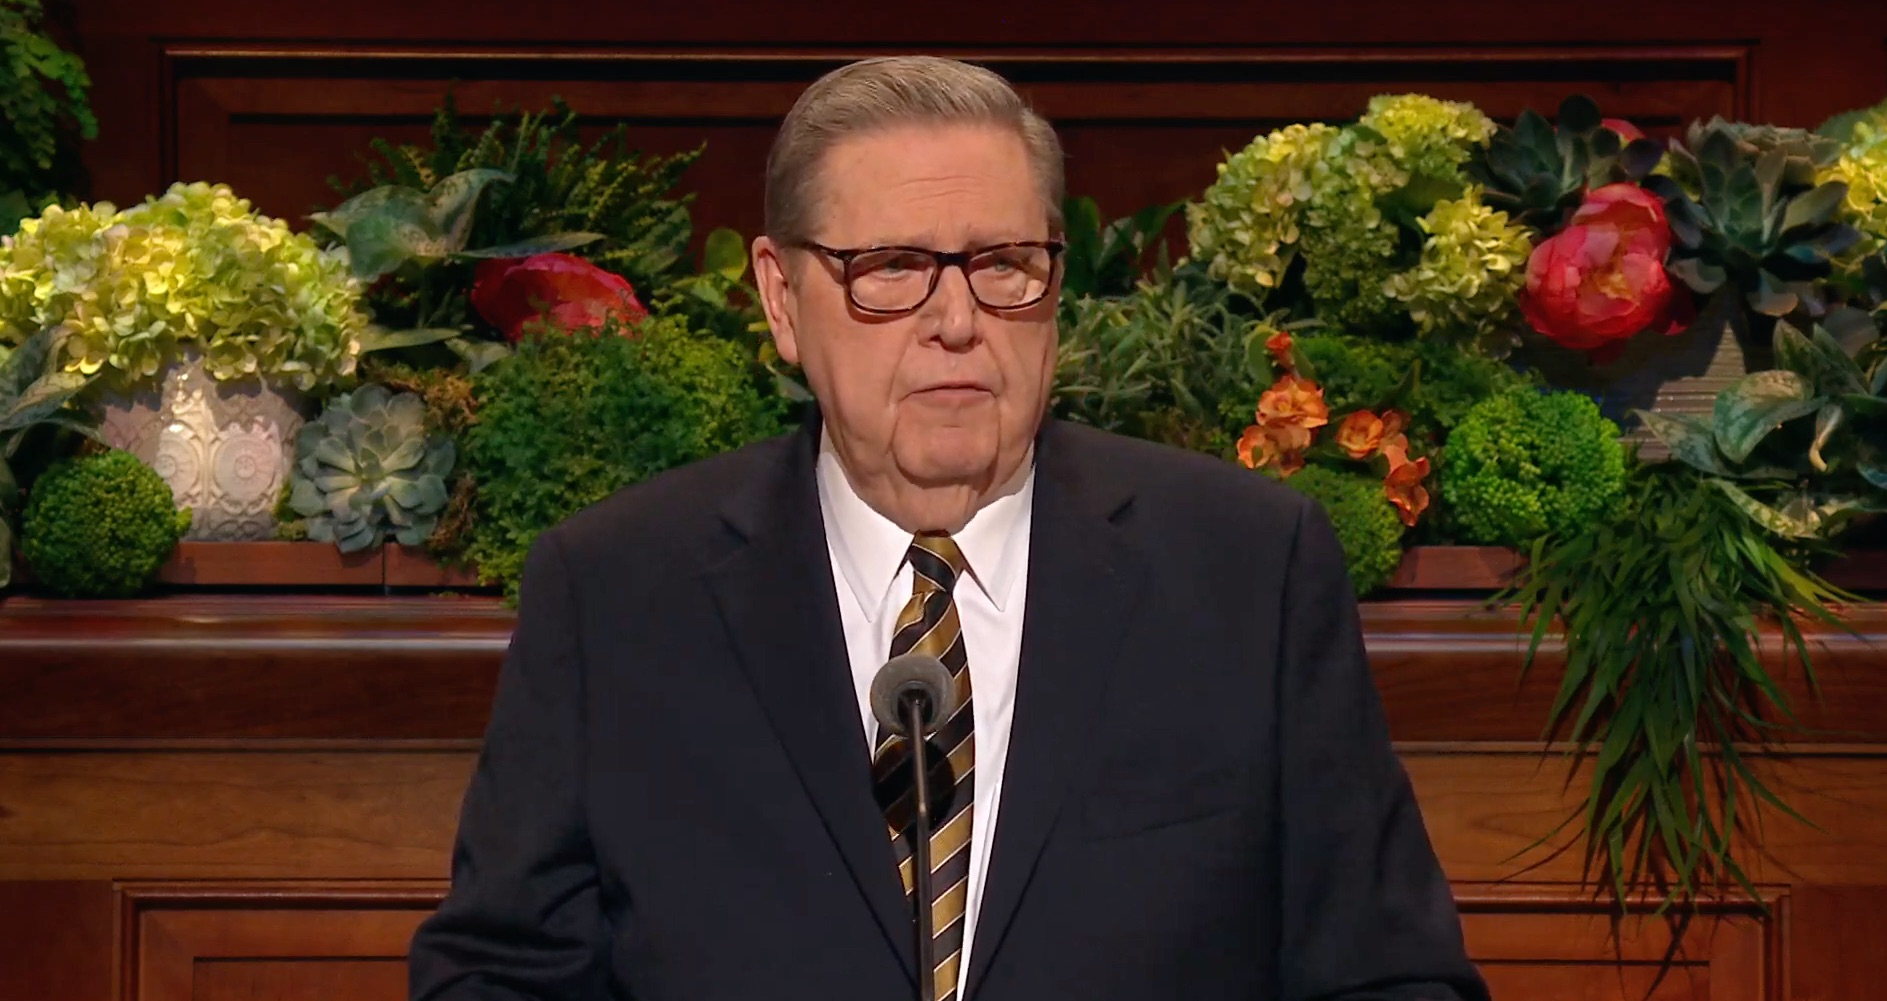 Elder Jeffrey R. Holland of the Quorum of the Twelve Apostles gives his address during the Saturday afternoon session of the 189th Annual General Conference on April 6, 2019.